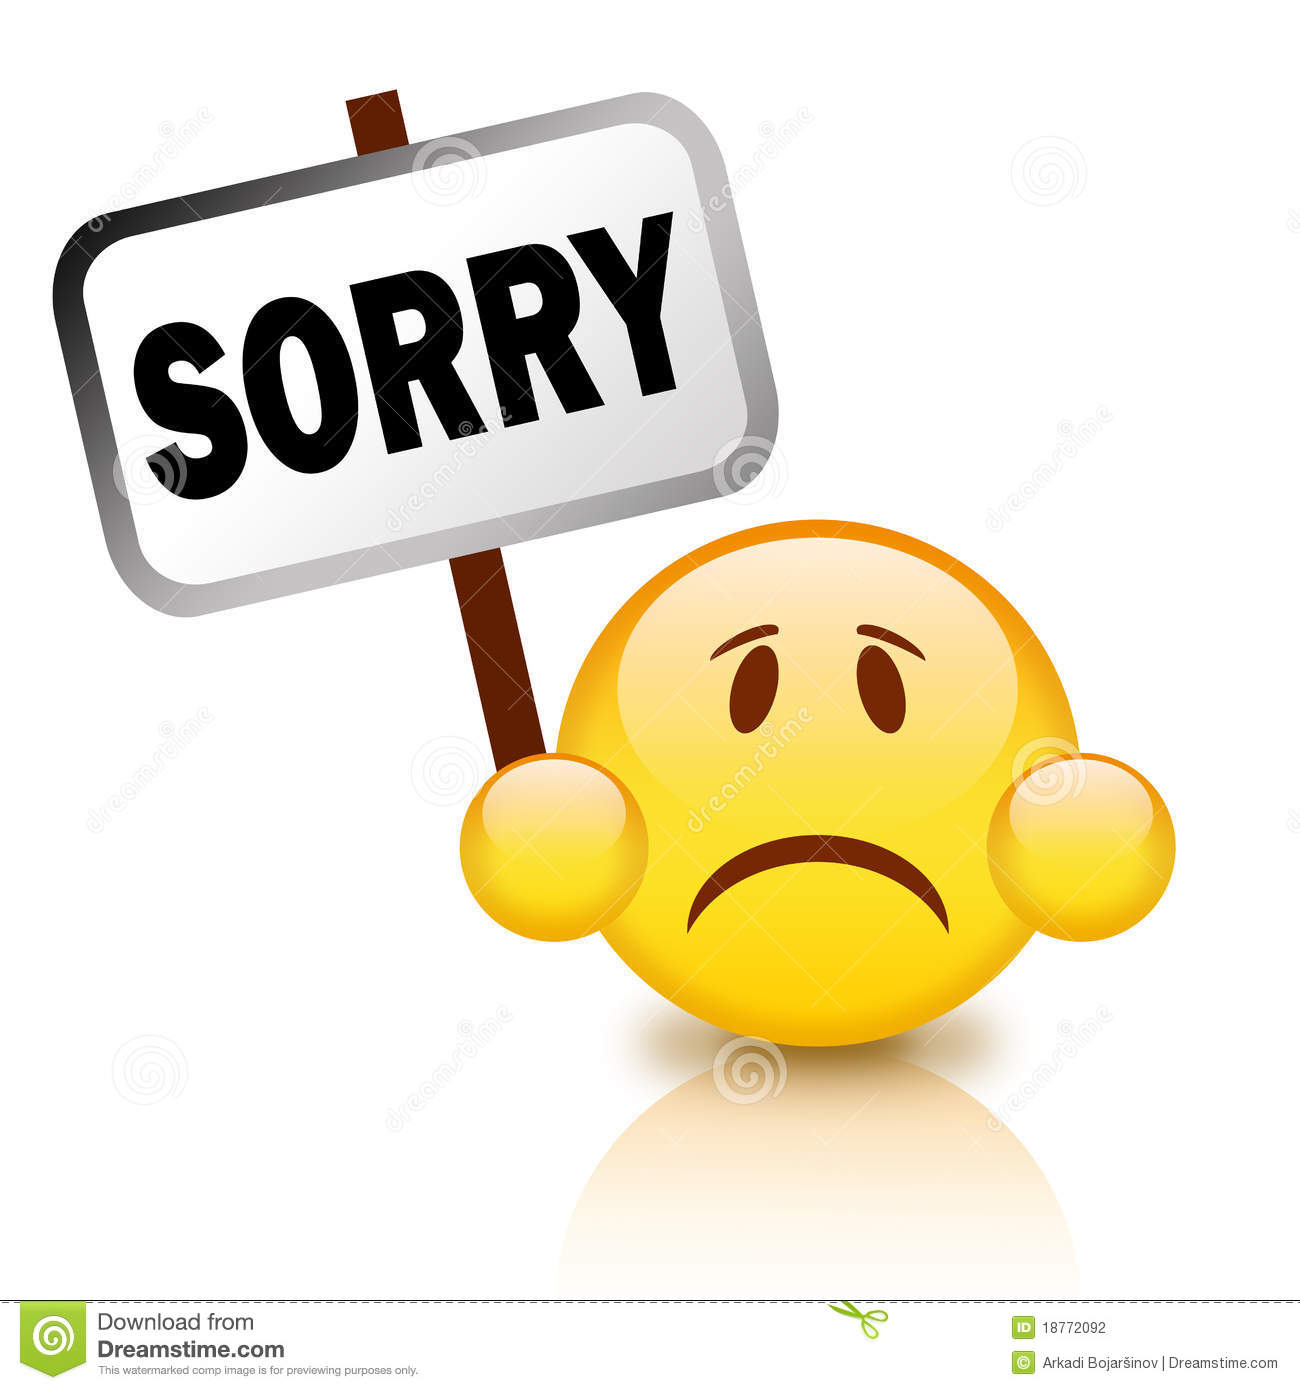 sorry sign stock illustration. illustration of mistake - 18772092